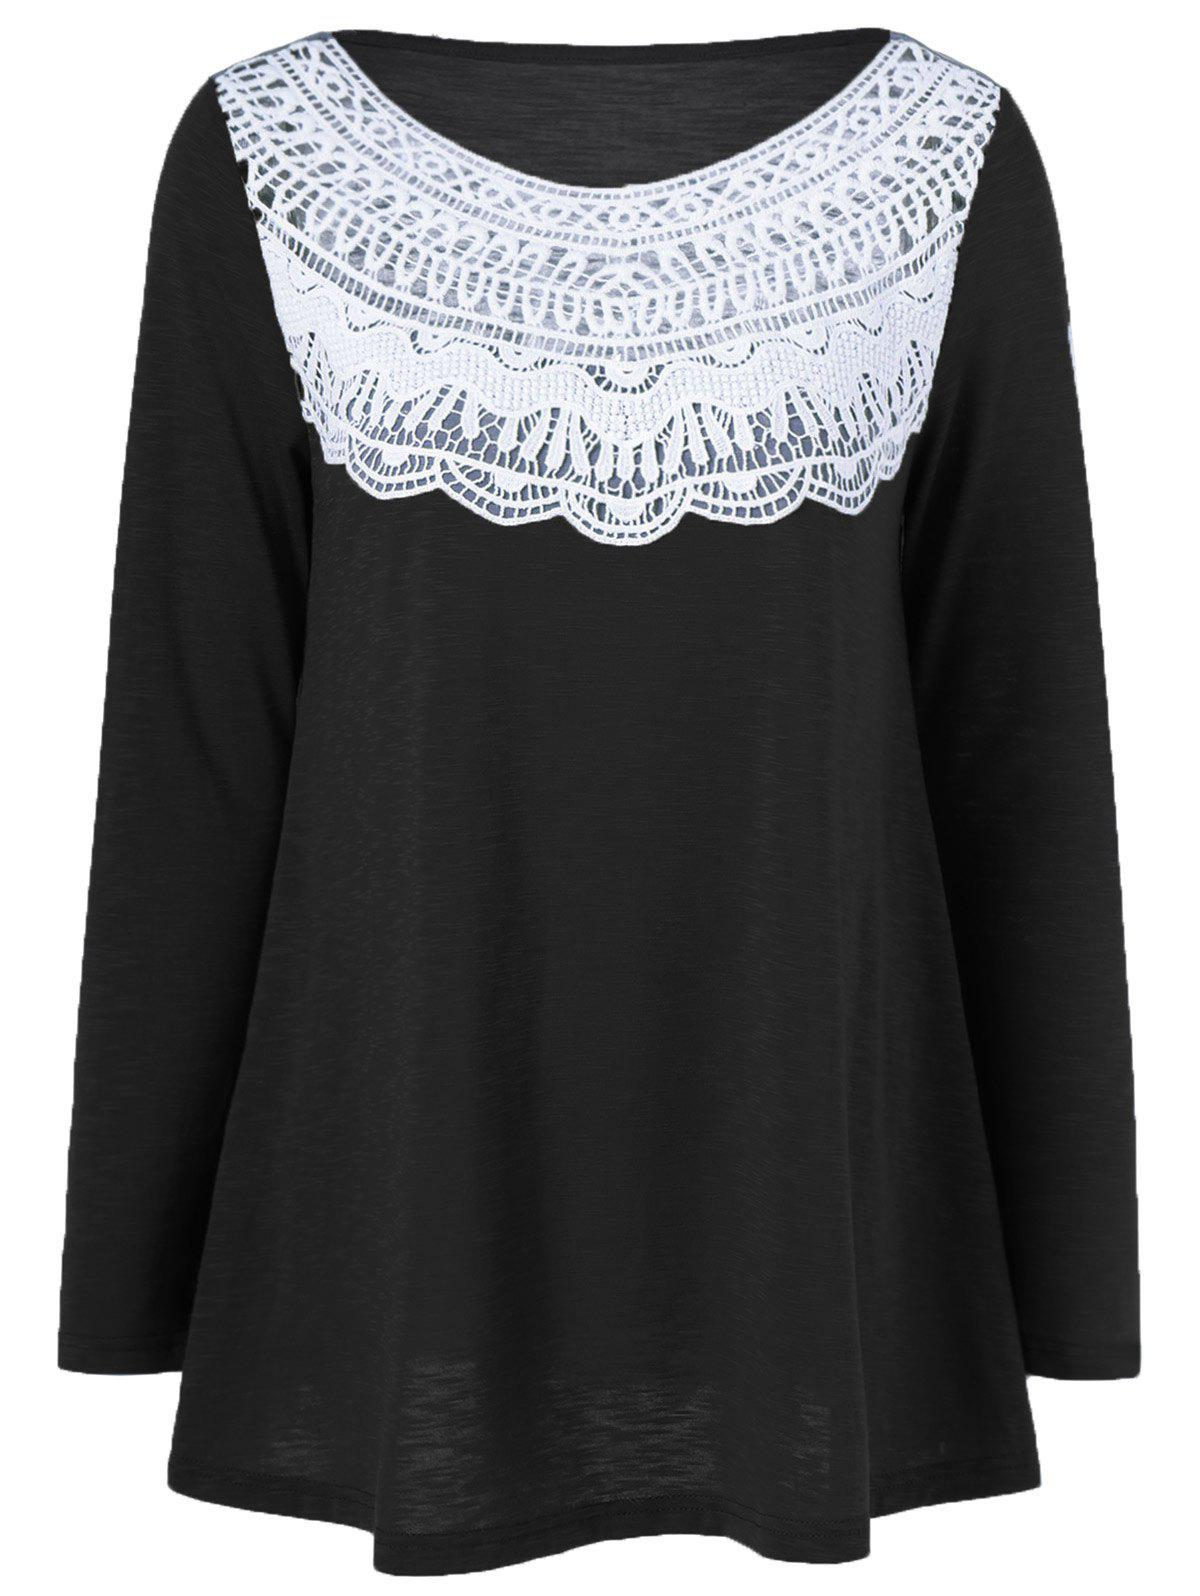 Lace Splicing Pleated T-Shirt - BLACK XL